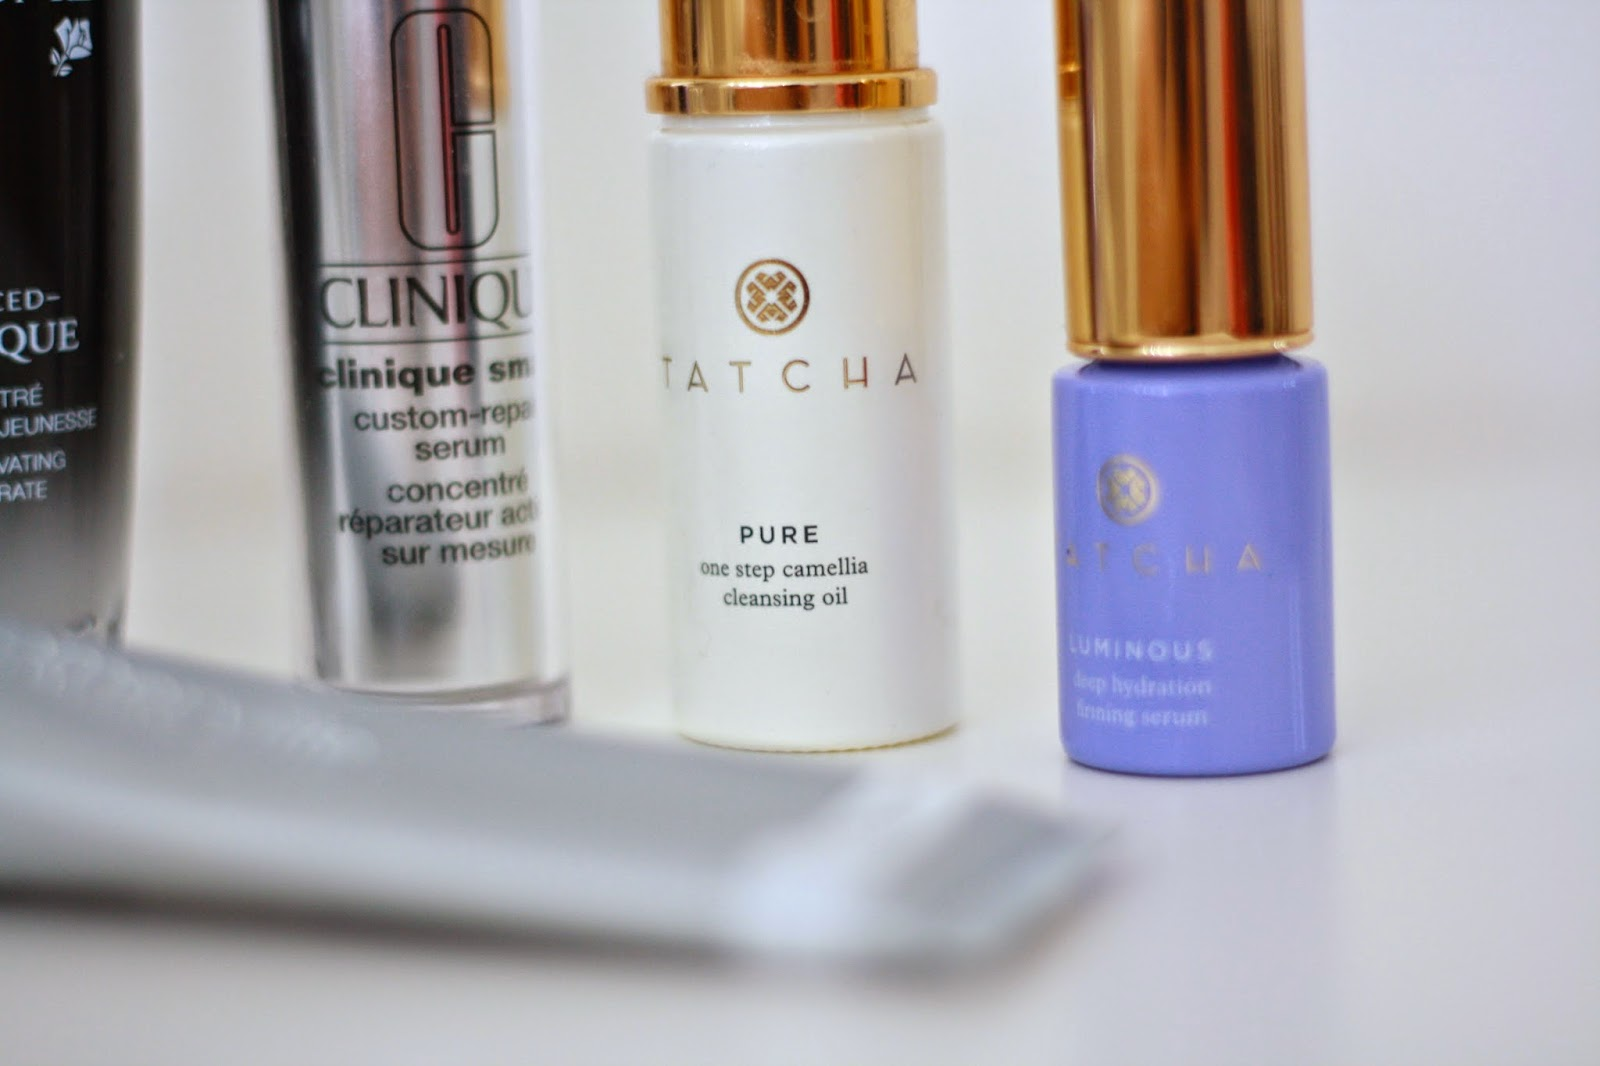 simplyxclassic, skincare, beauty, kate sommerville, tatcha, lancome genifique, burke williams spa, h2v,